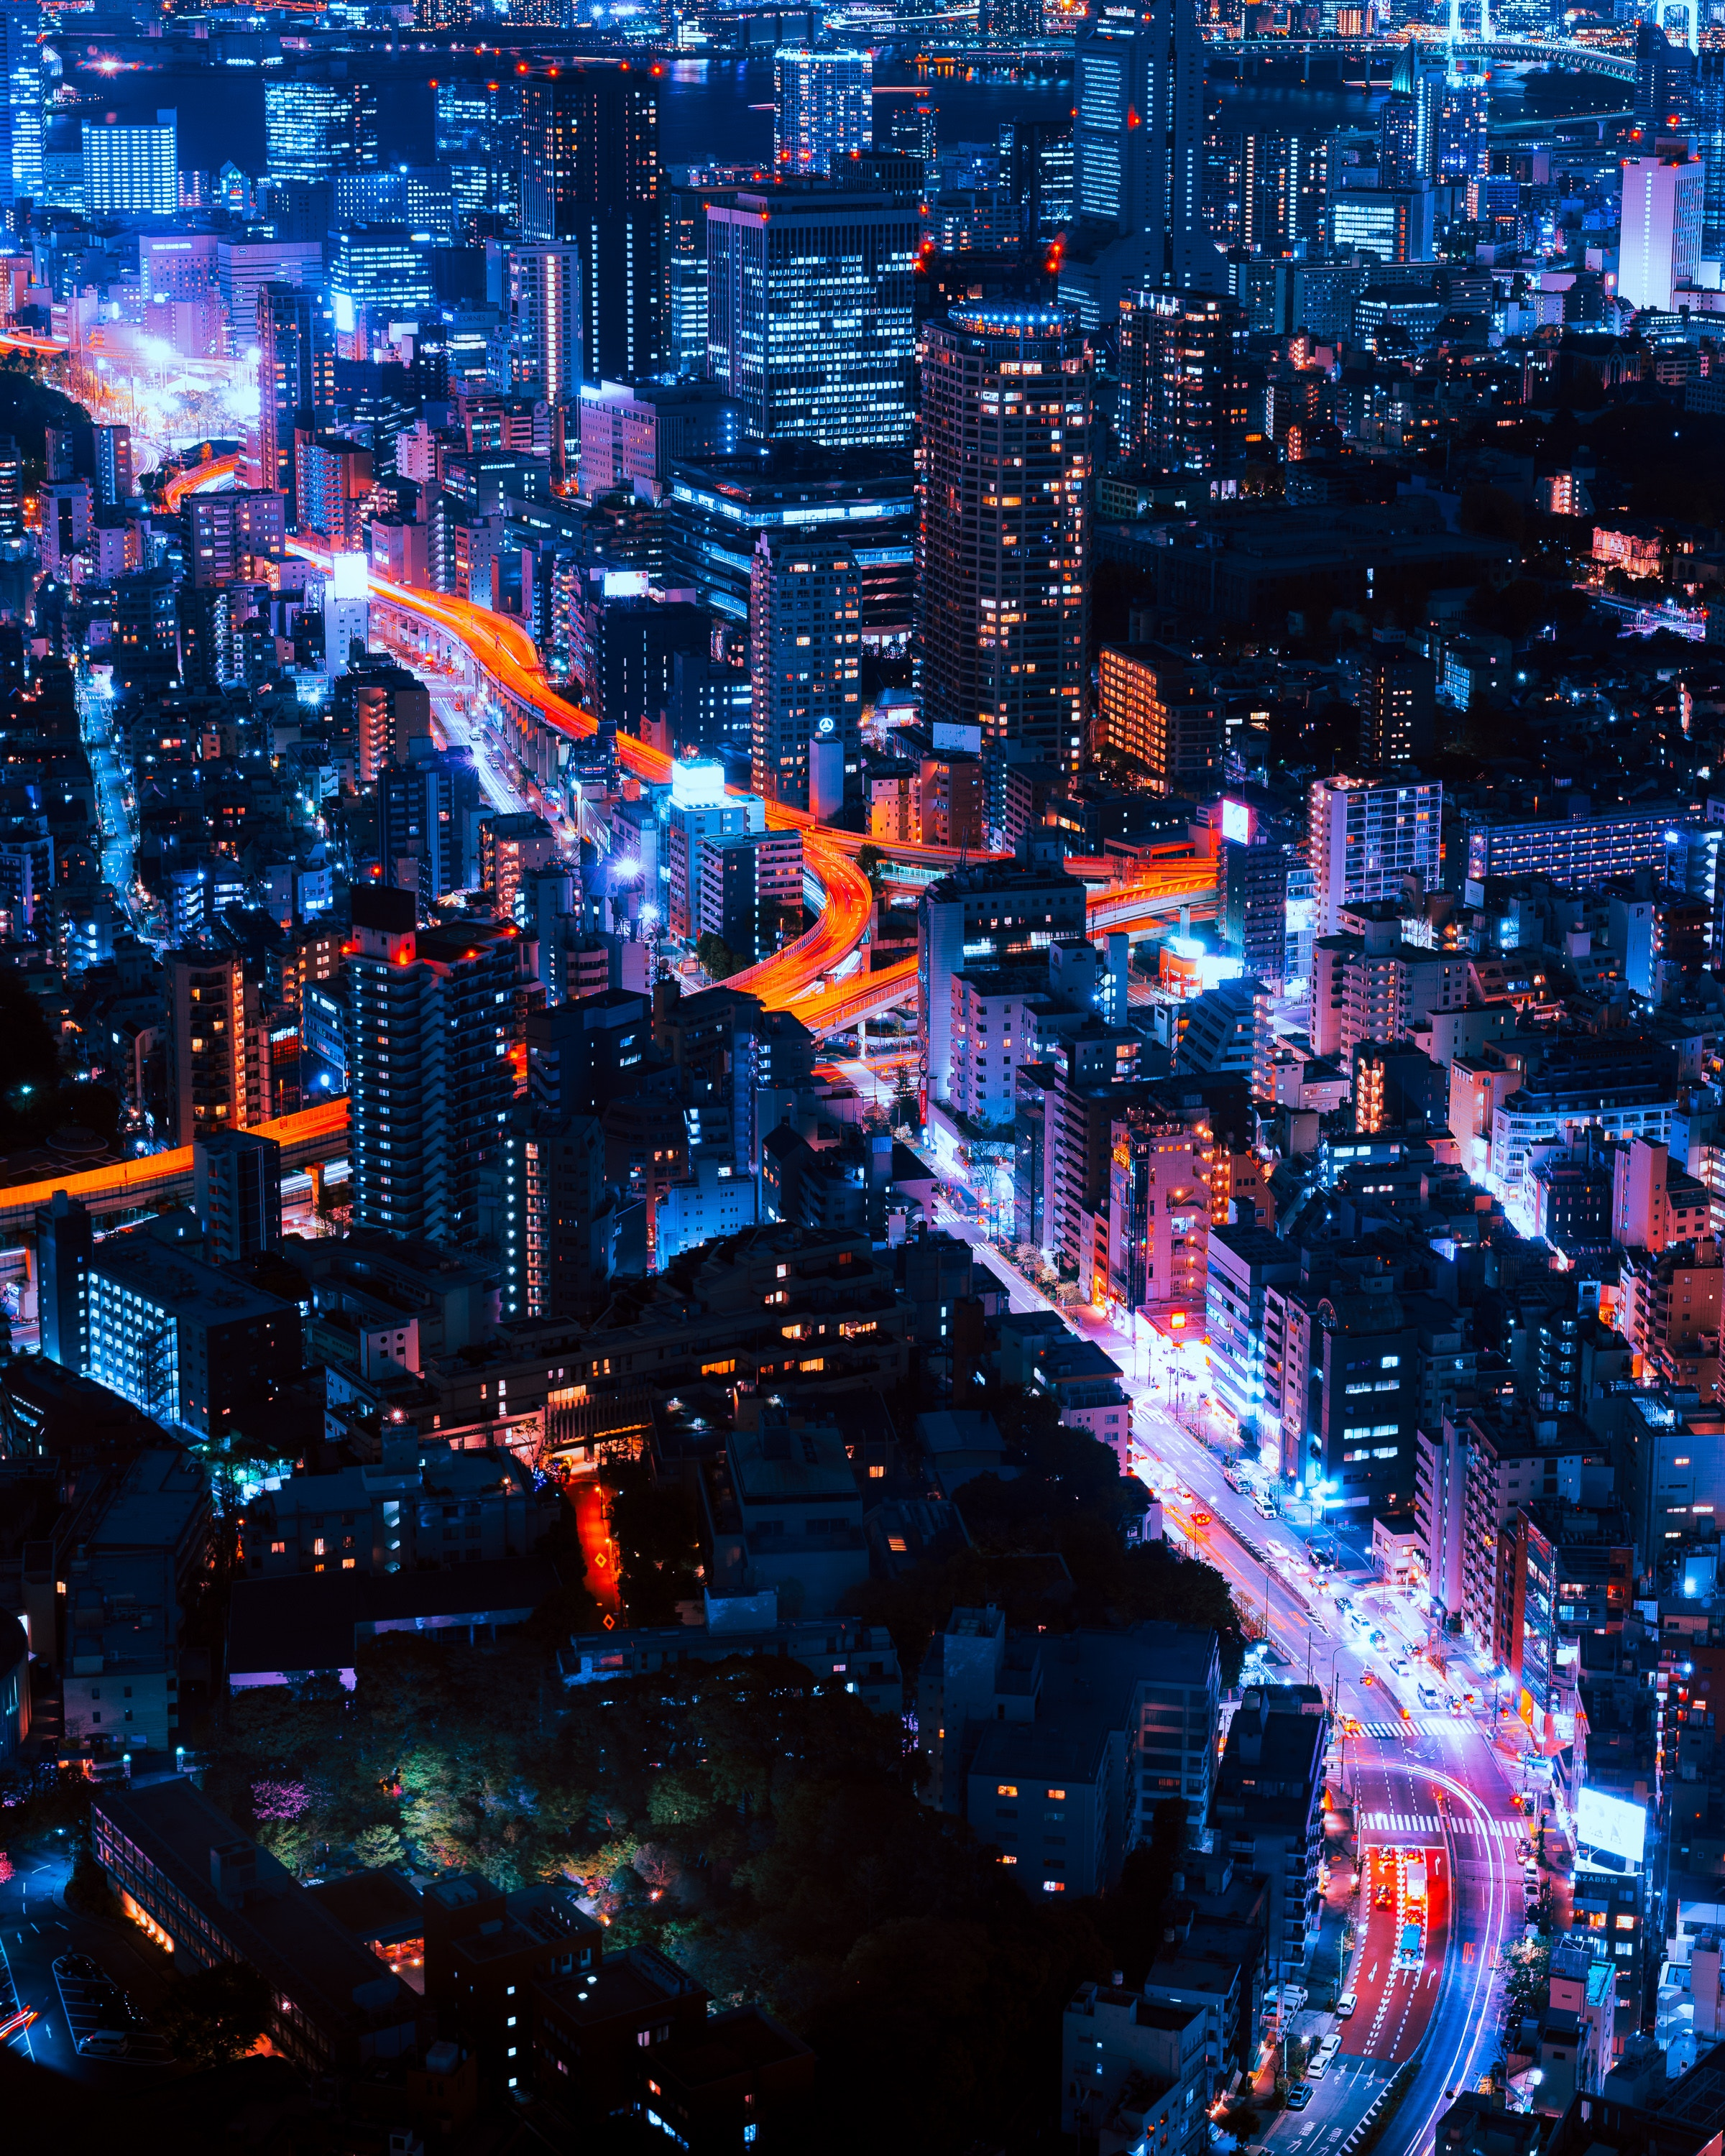 Skyline view of Tokyo with orange and blue lights illuminating its streets